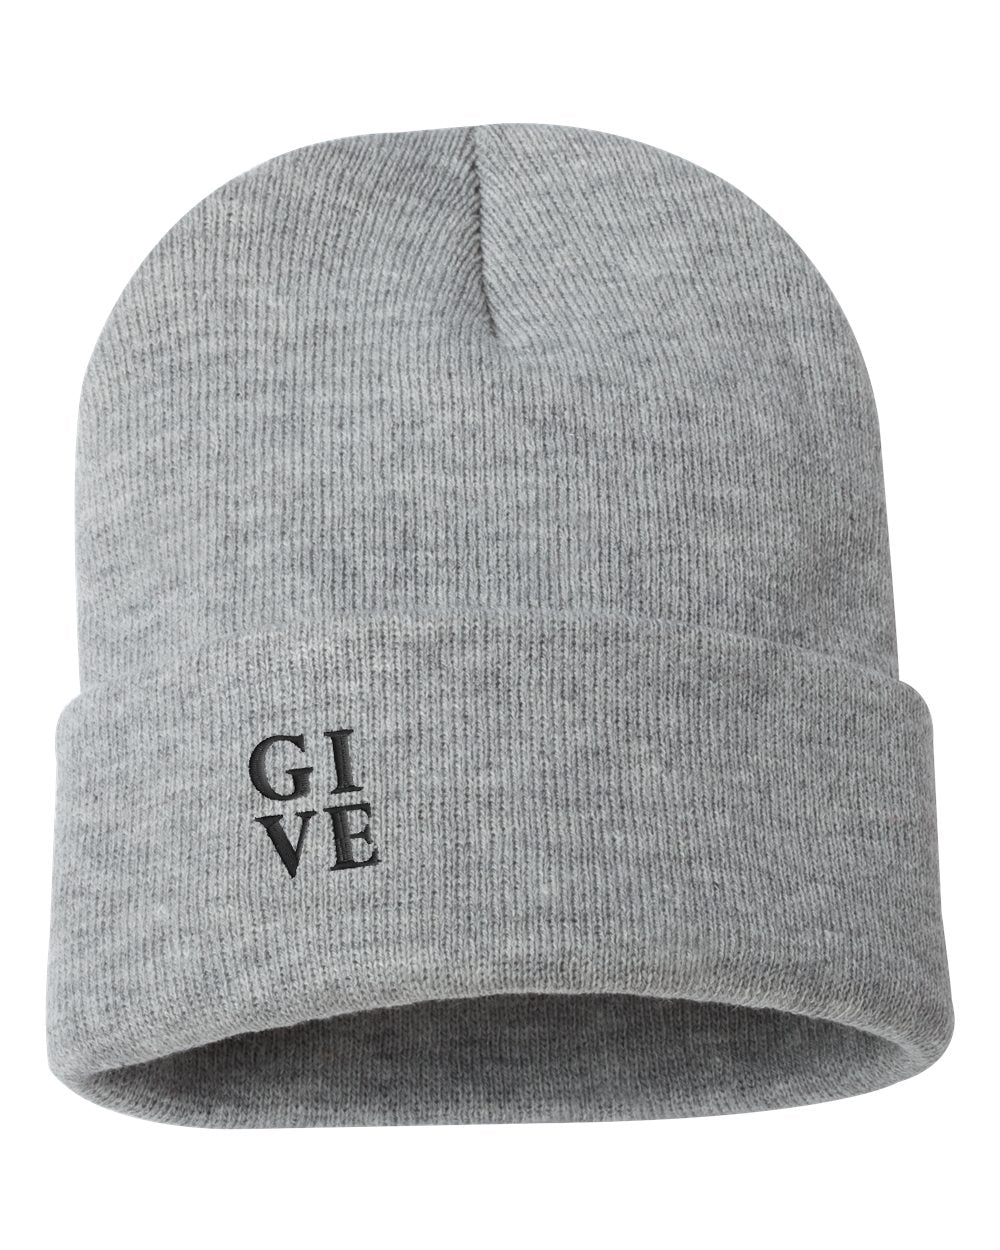 "GIVE Embroidered Ribbed 12"" Inch Acrylic Knit Beanie"